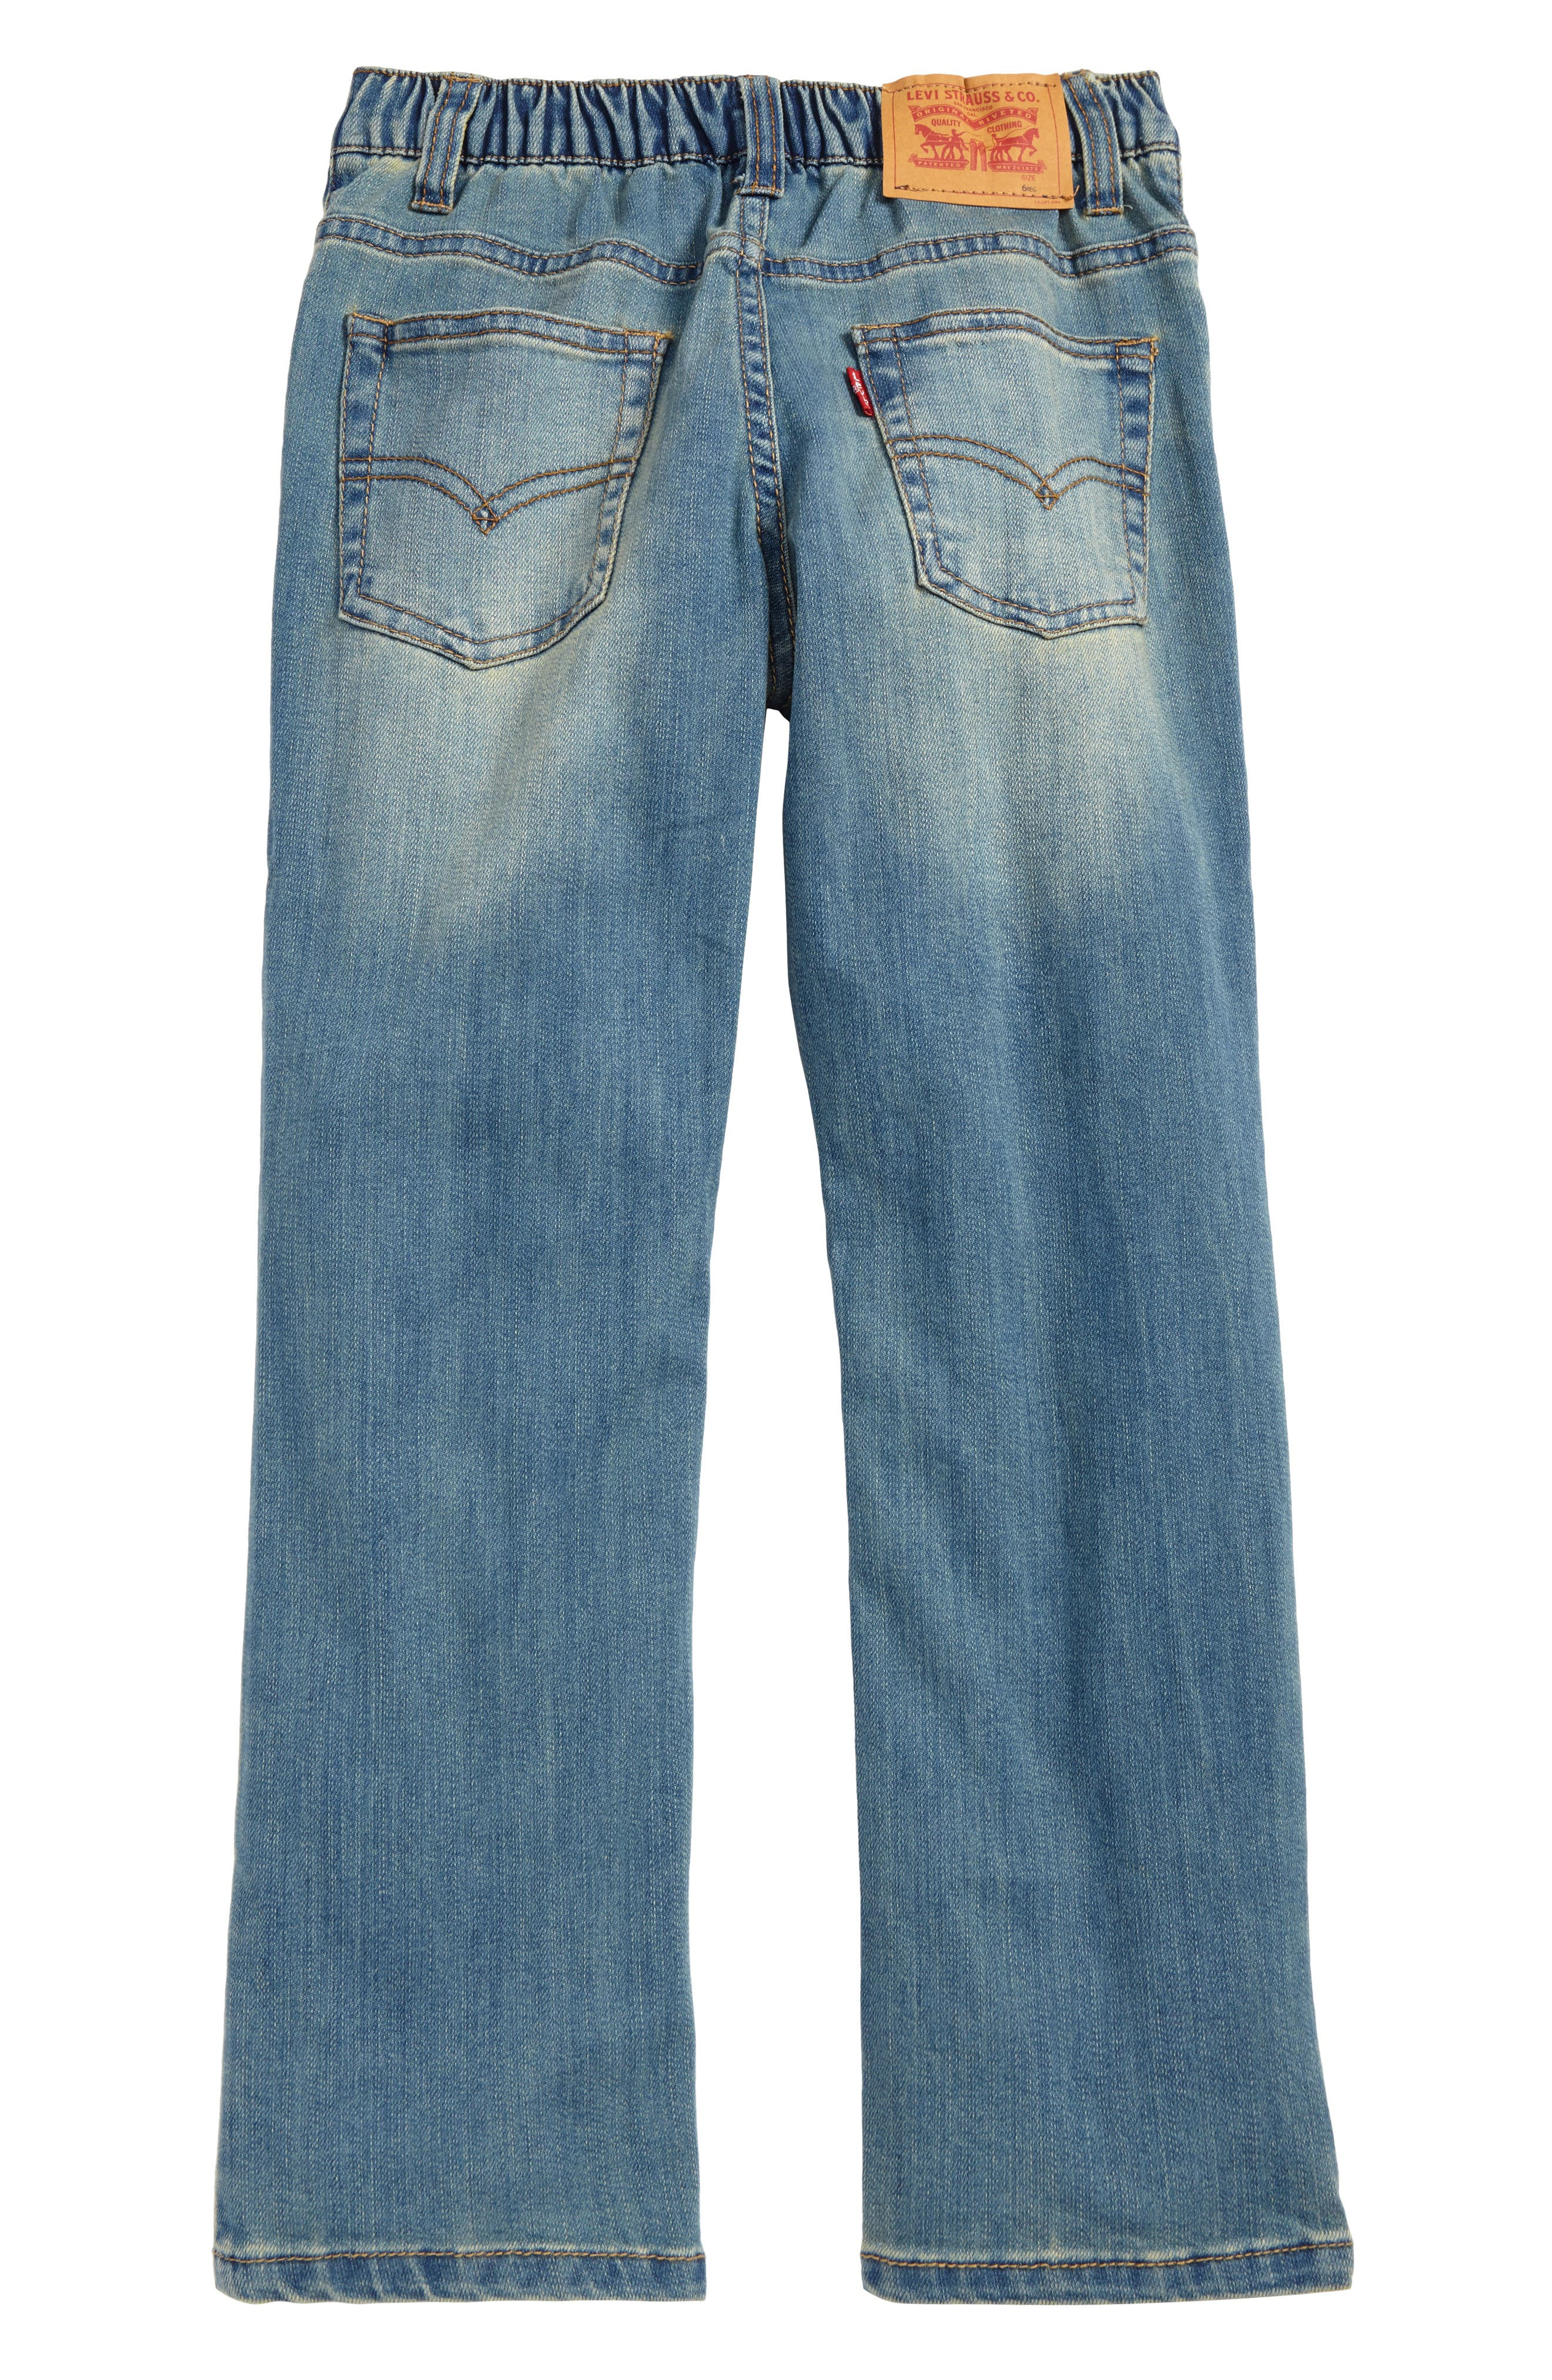 Alternate Image 2  - Levi's® Comfort Slim Fit Jeans (Toddler Boys & Little Boys)